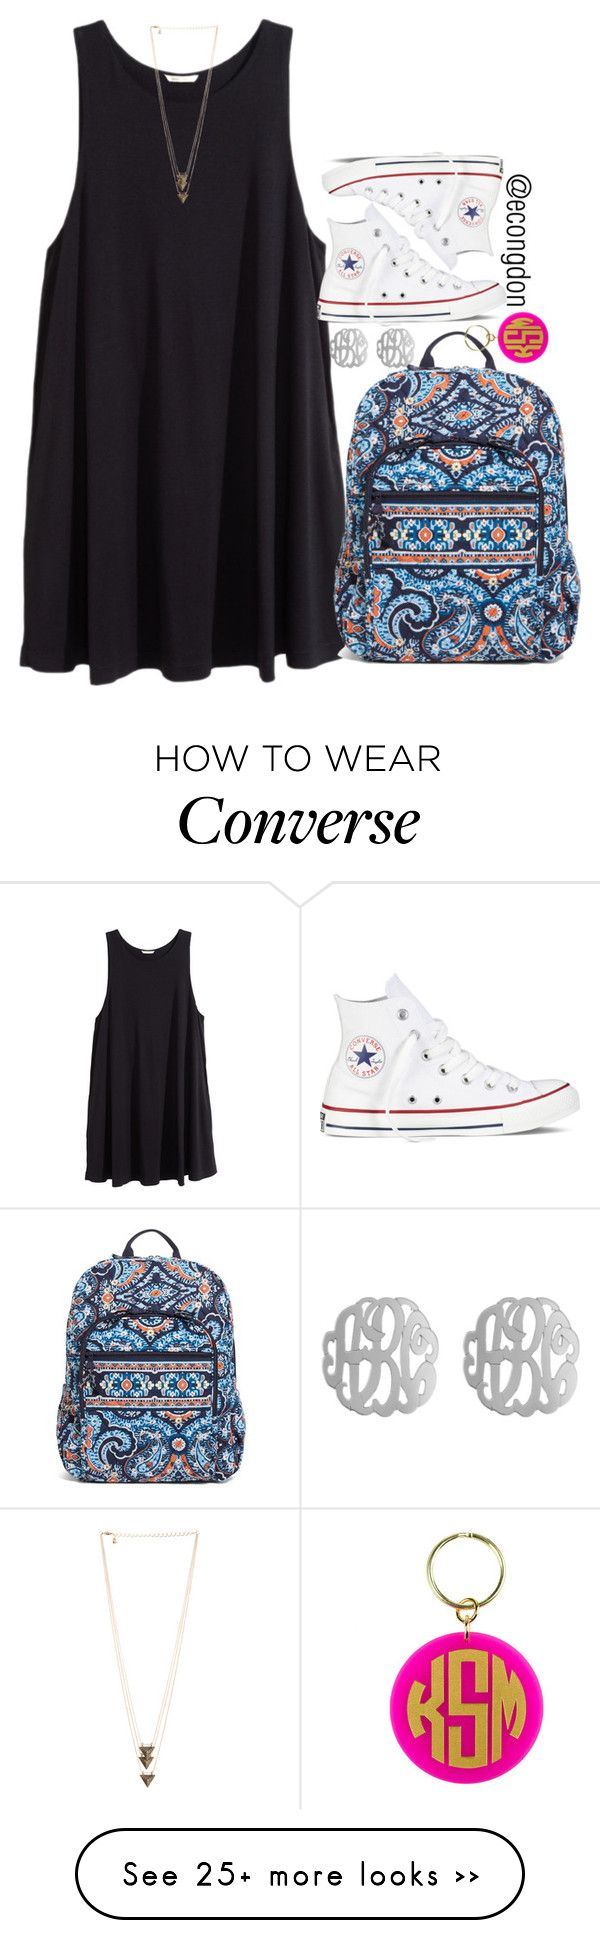 """""""day ✋ of #365happydays"""" by econgdon on Polyvore featuring H&M, Vera Bradley, Initial Reaction, Converse and happy"""